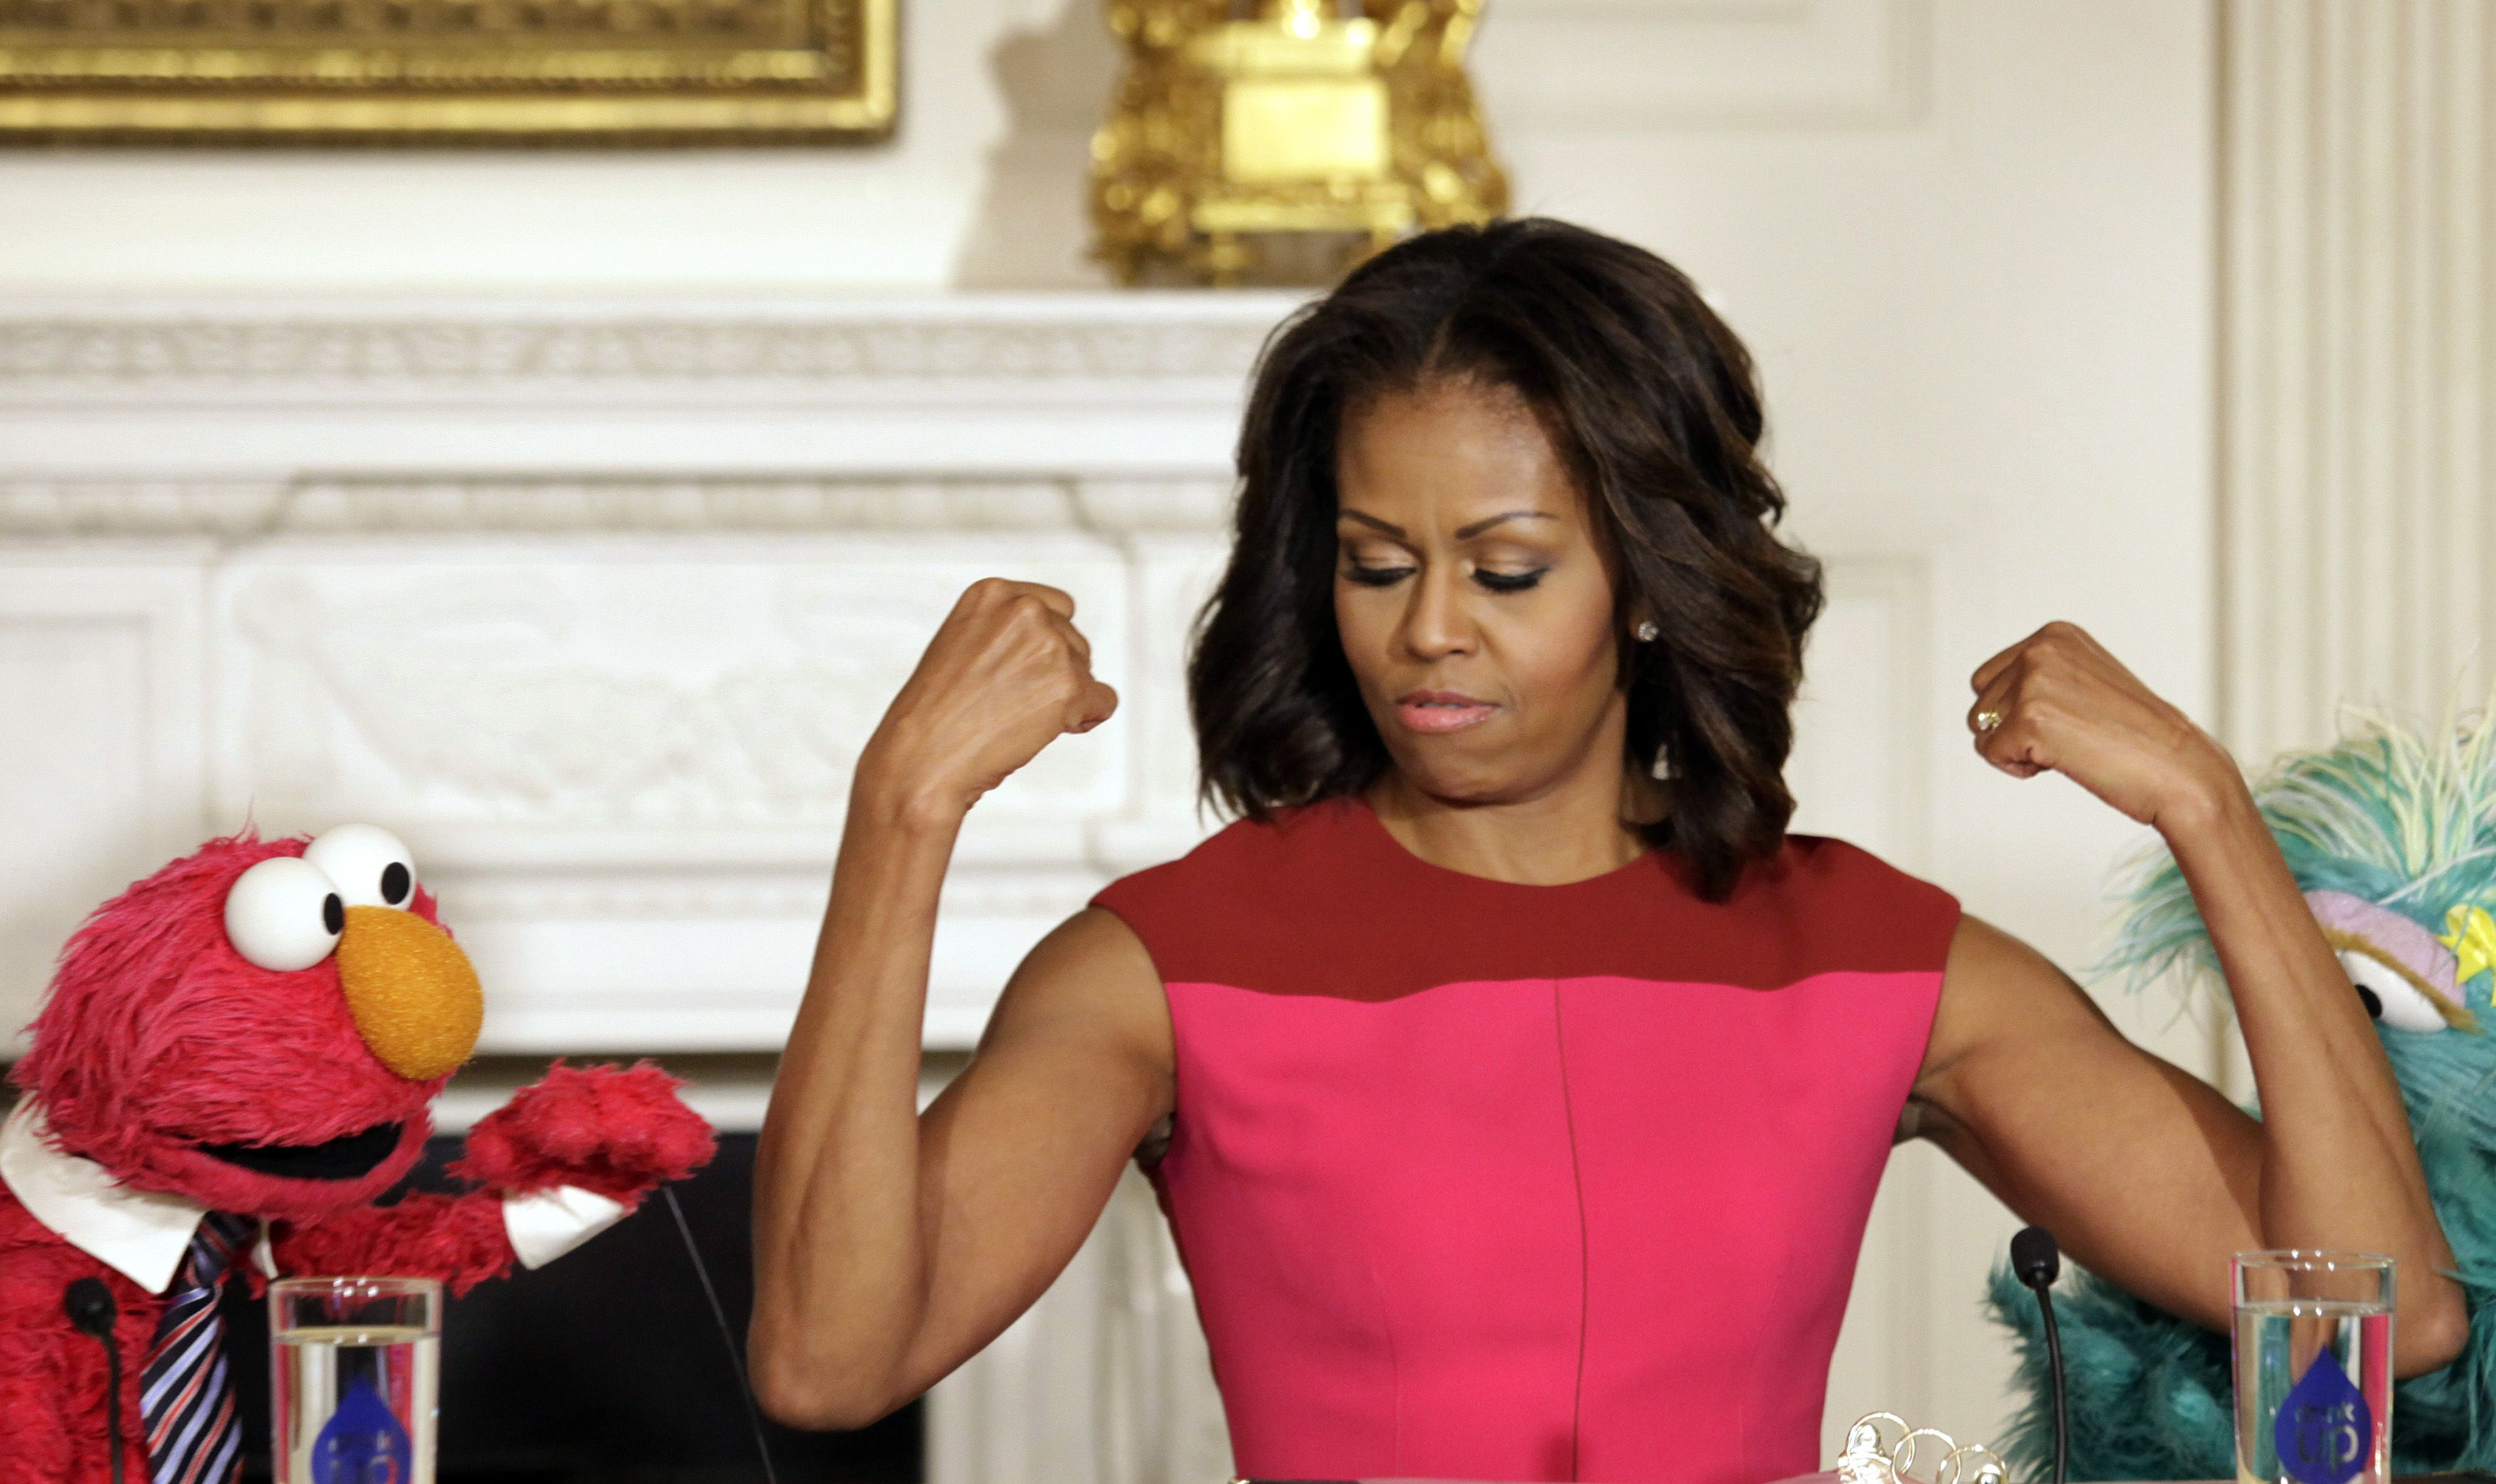 http://www.ibtimes.com/michelle-obama-workout-first-ladys-routine-dcs-solidcore-may-be-secret-her-toned-arms-1643570